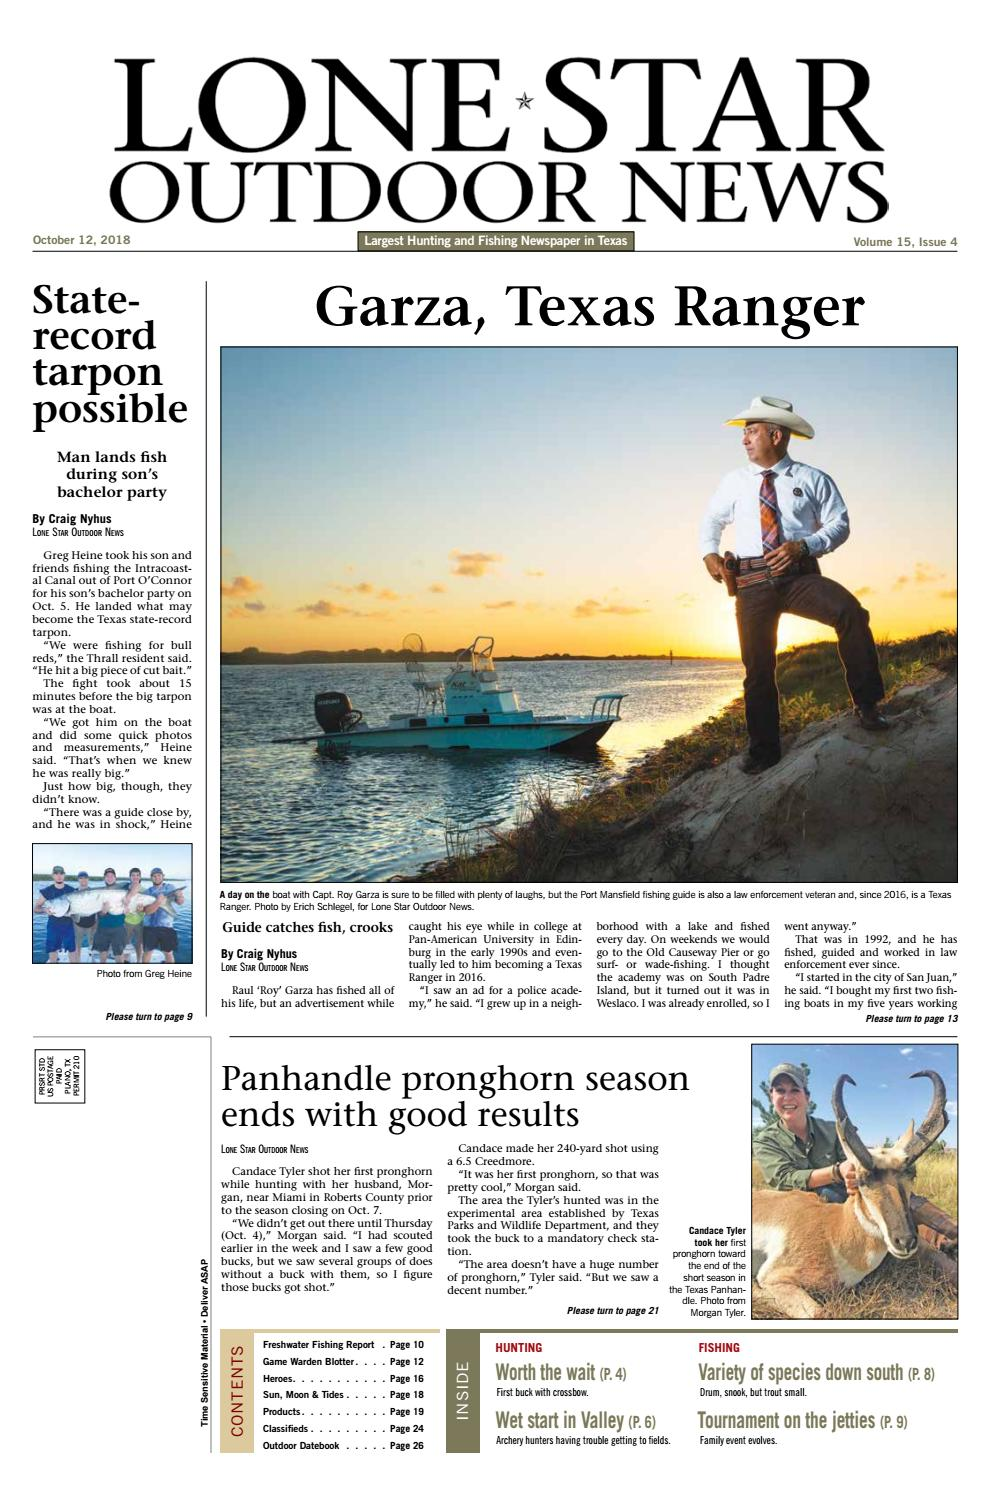 October 12, 2018 - Lone Star Outdoor News - Fishing